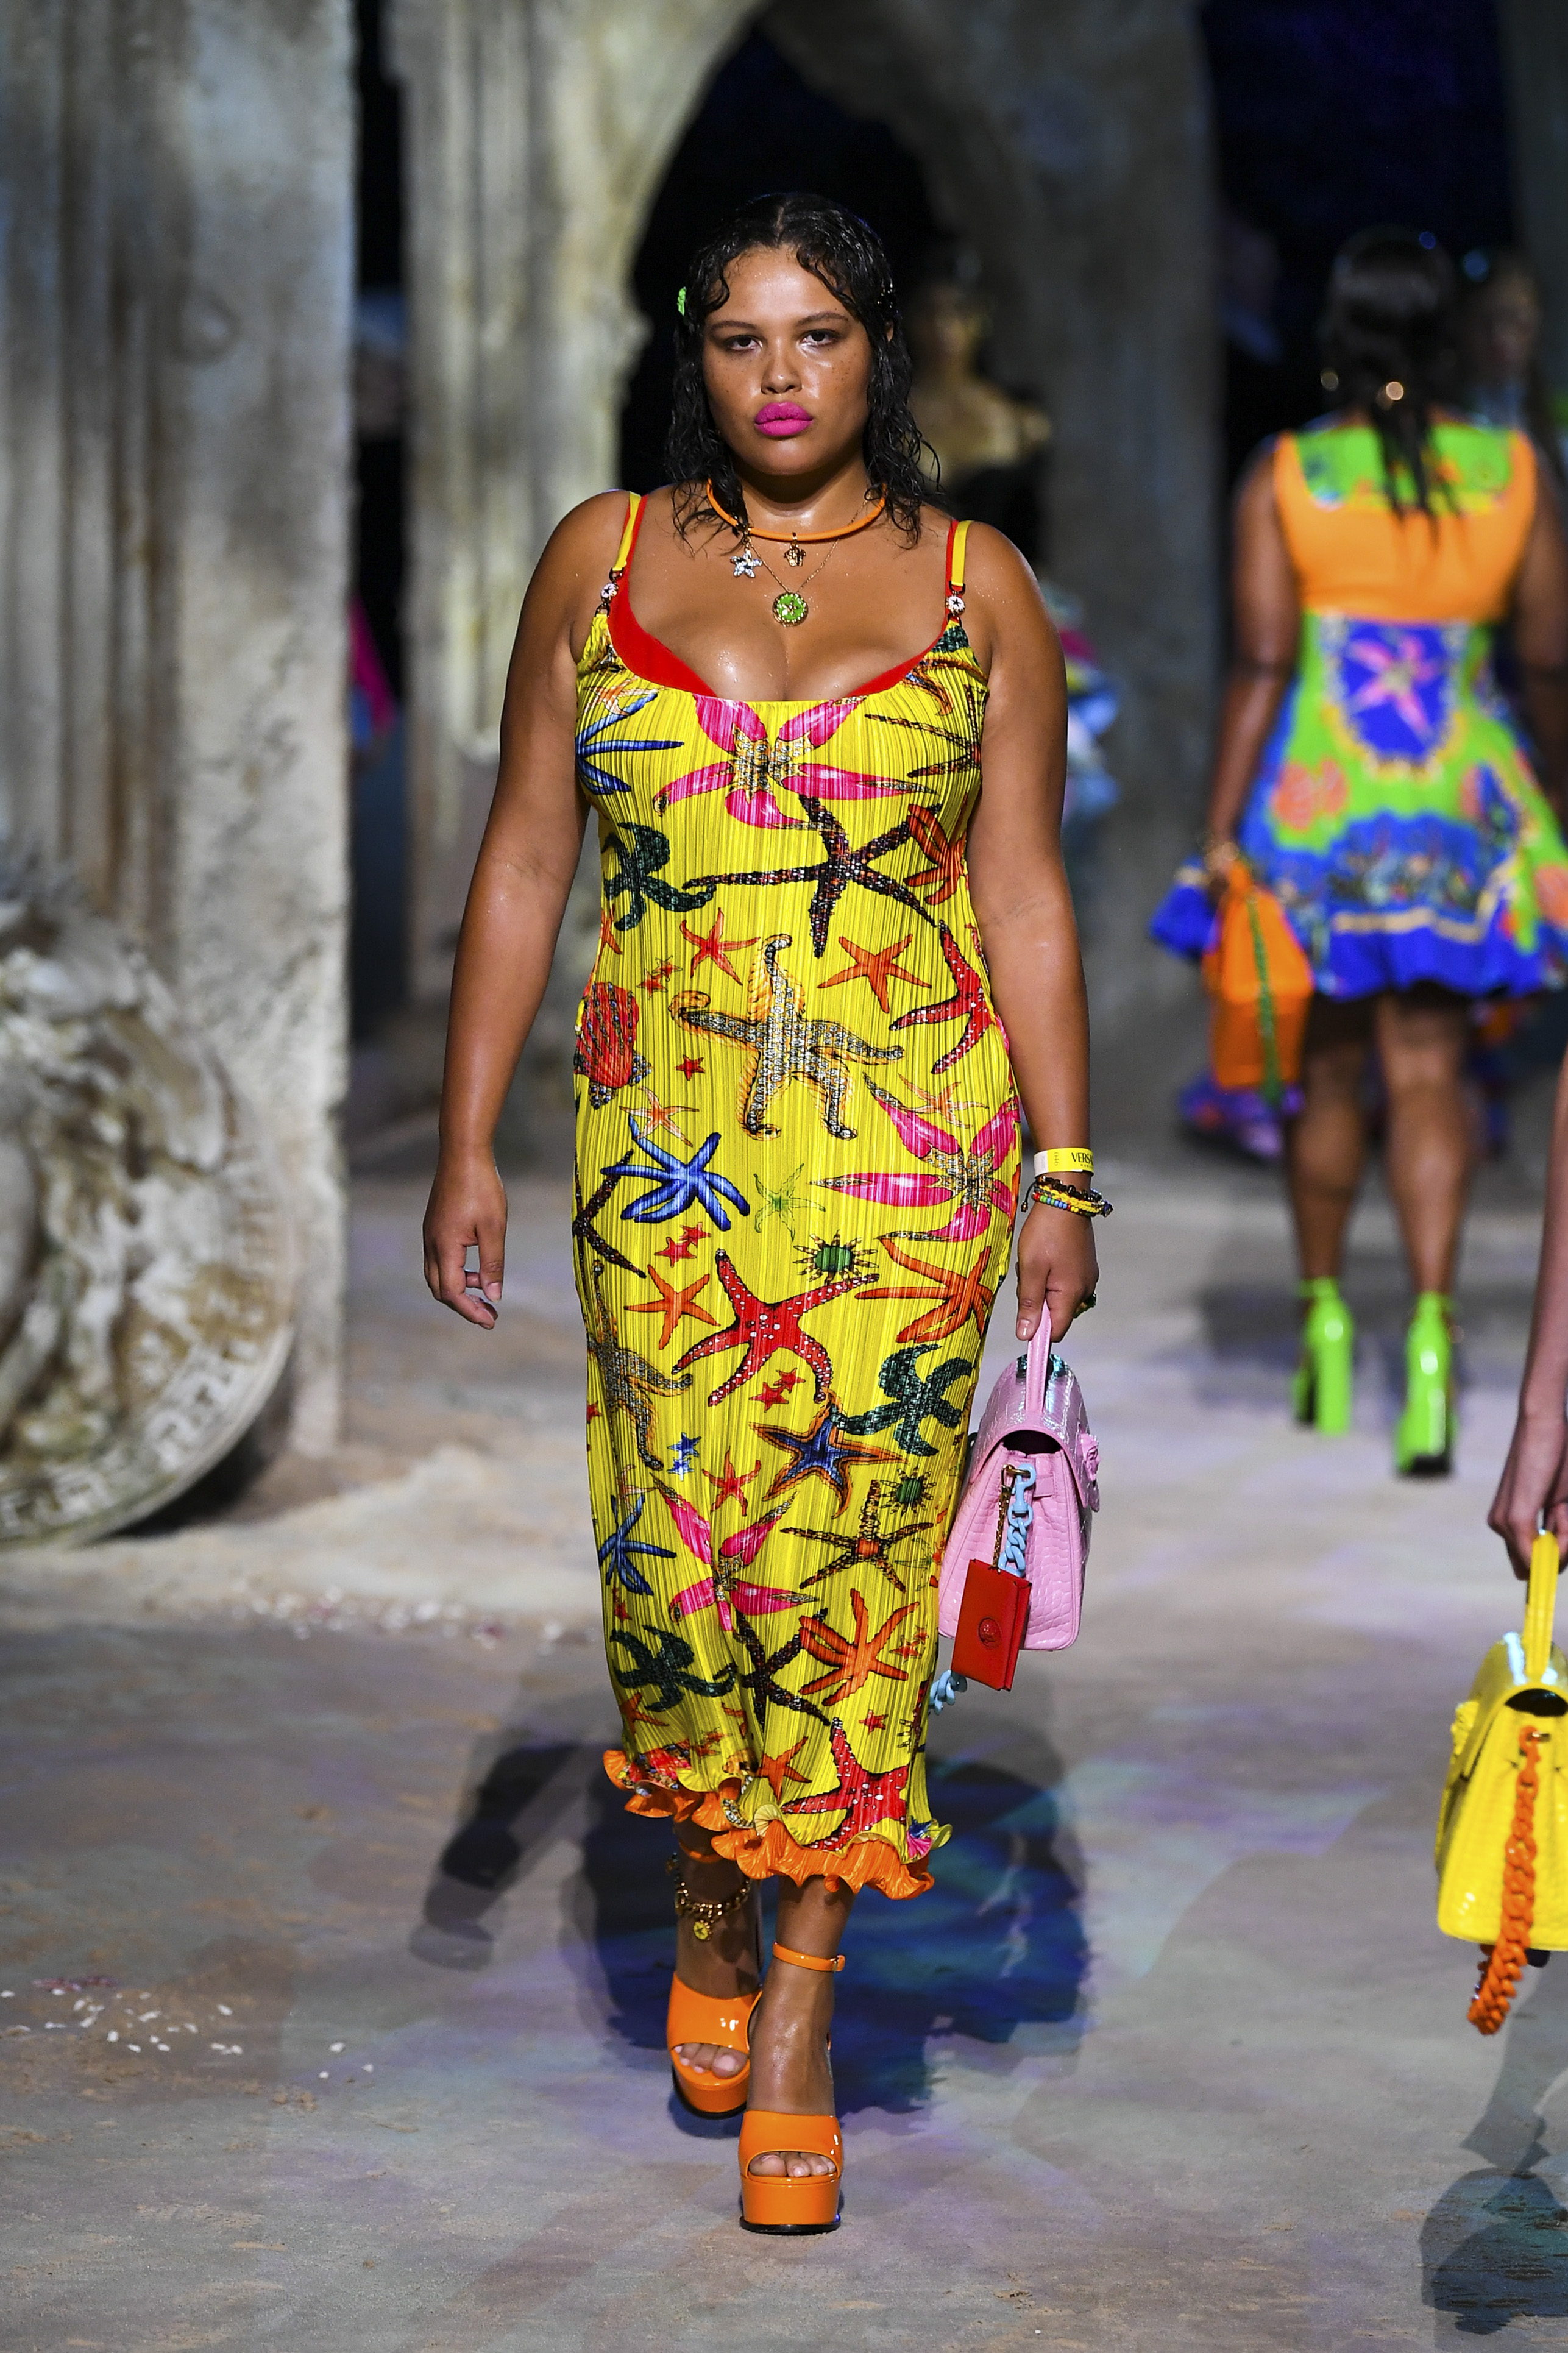 Prints galore: Dolce & Gabbana and Versace's Spring/Summer '21 collection (фото 20)